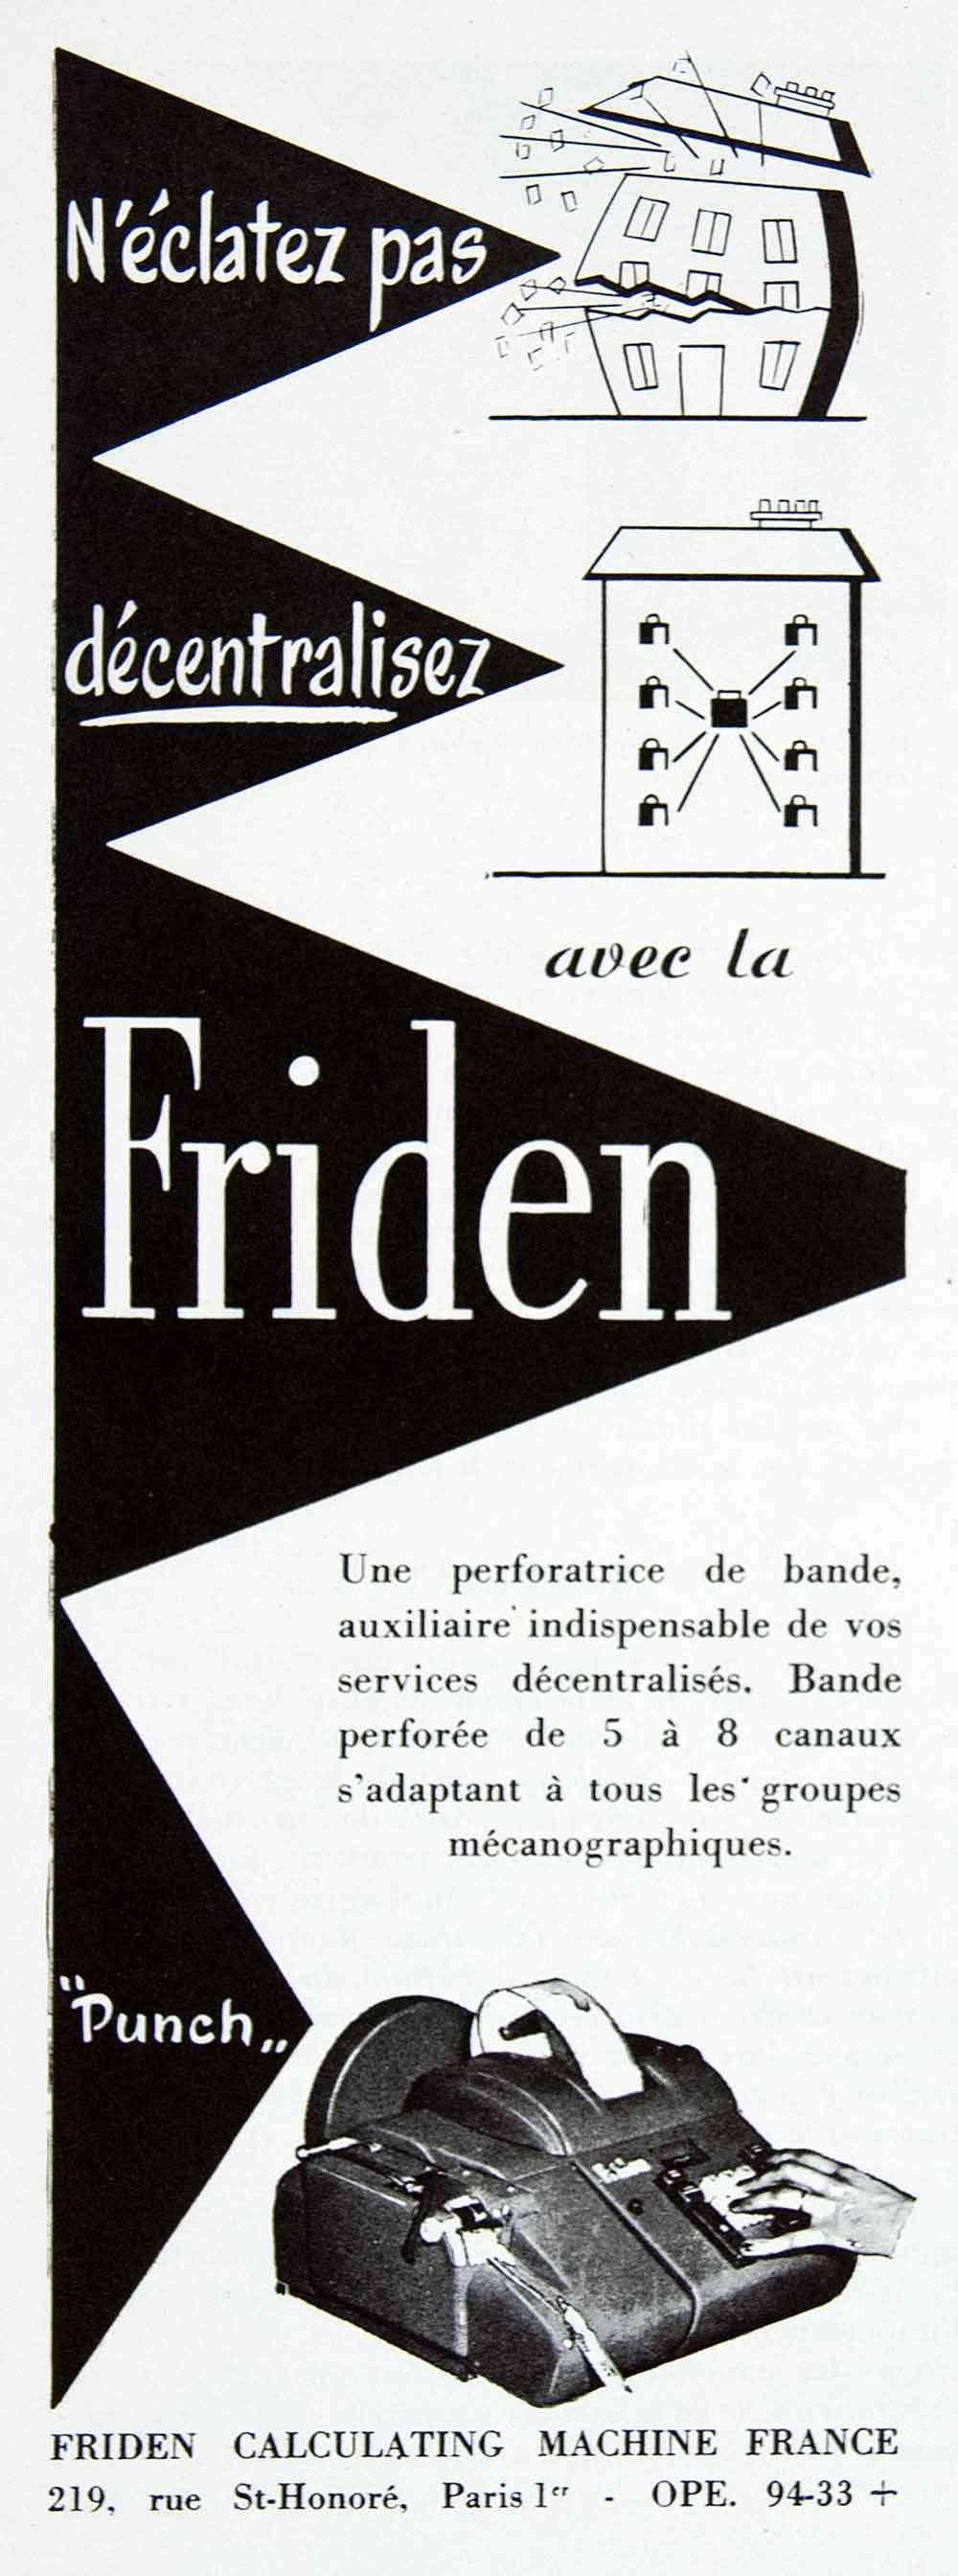 1956 Ad Friden Calculating Machine France French Fifties Technology Device VEN6